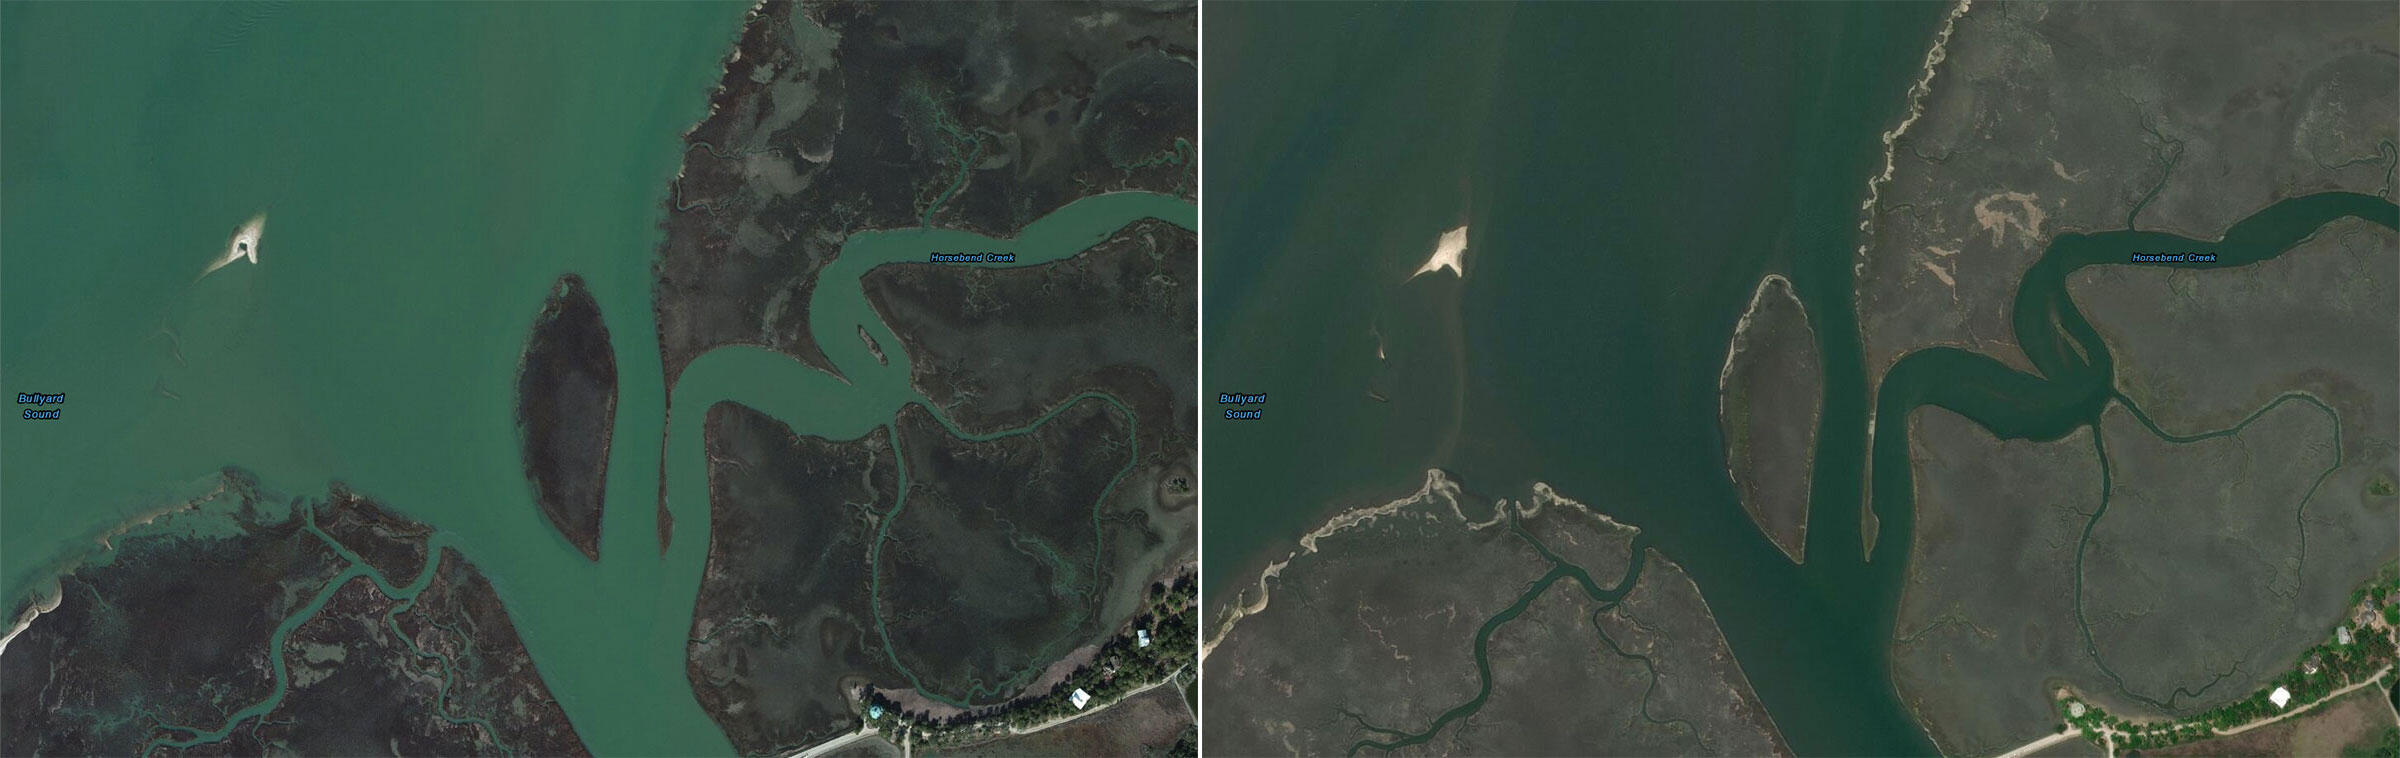 The surface area of Crab Bank in 2014 (left) versus today. Intensifying storms and wake from shipping traffic have caused the terrain to erode away. Maps: Courtesy of Esri